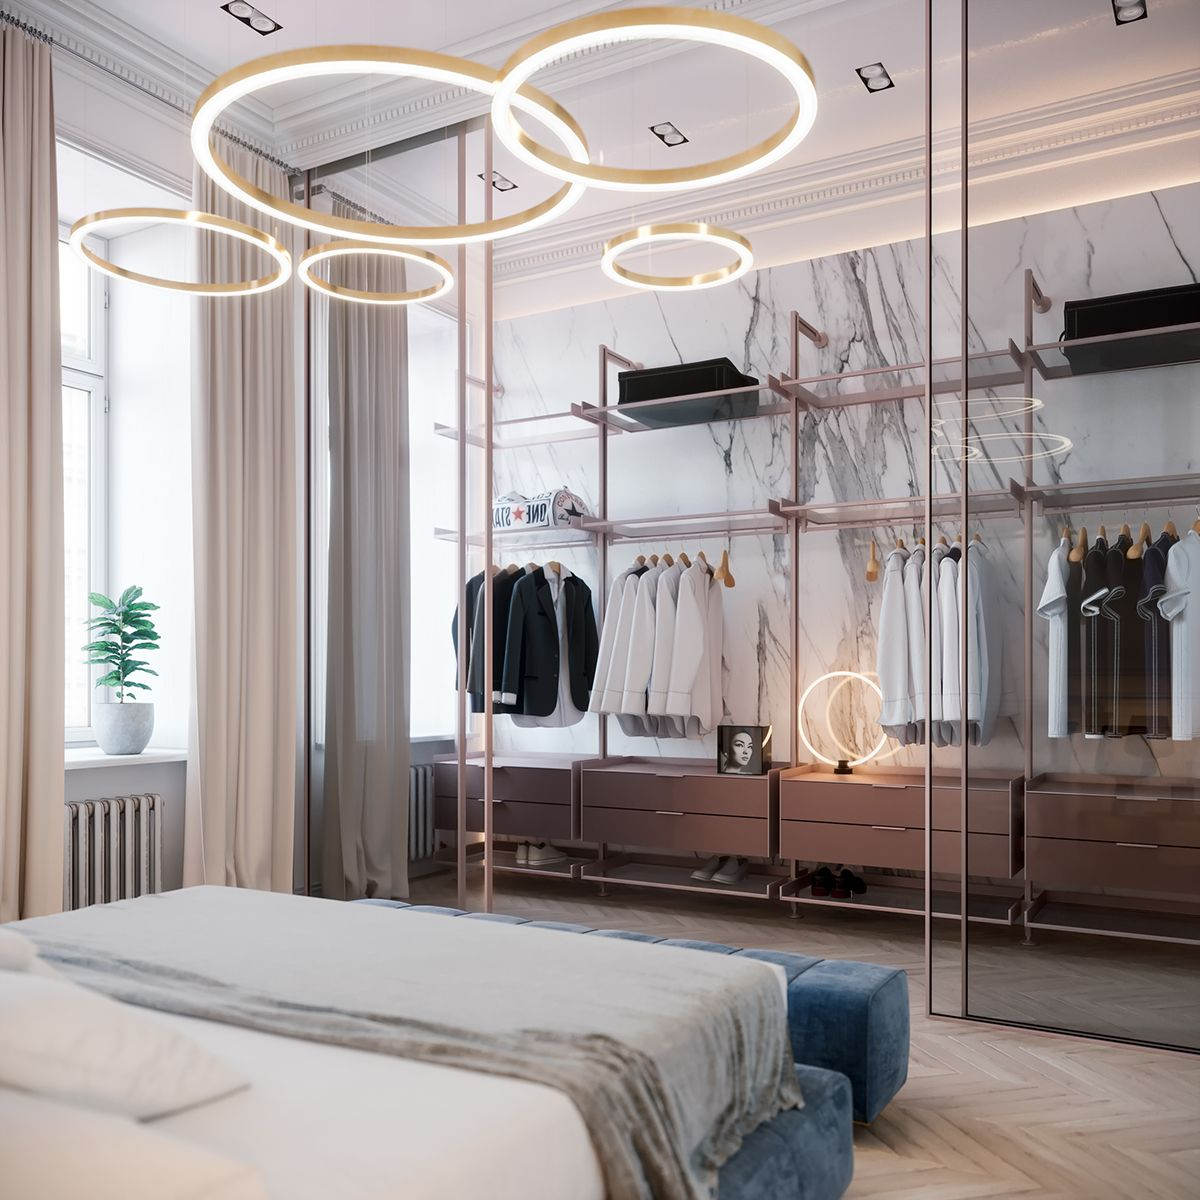 Bedroom In Contemporary Style On Behance: Bedroom In St. Petersburg On Behance In 2019